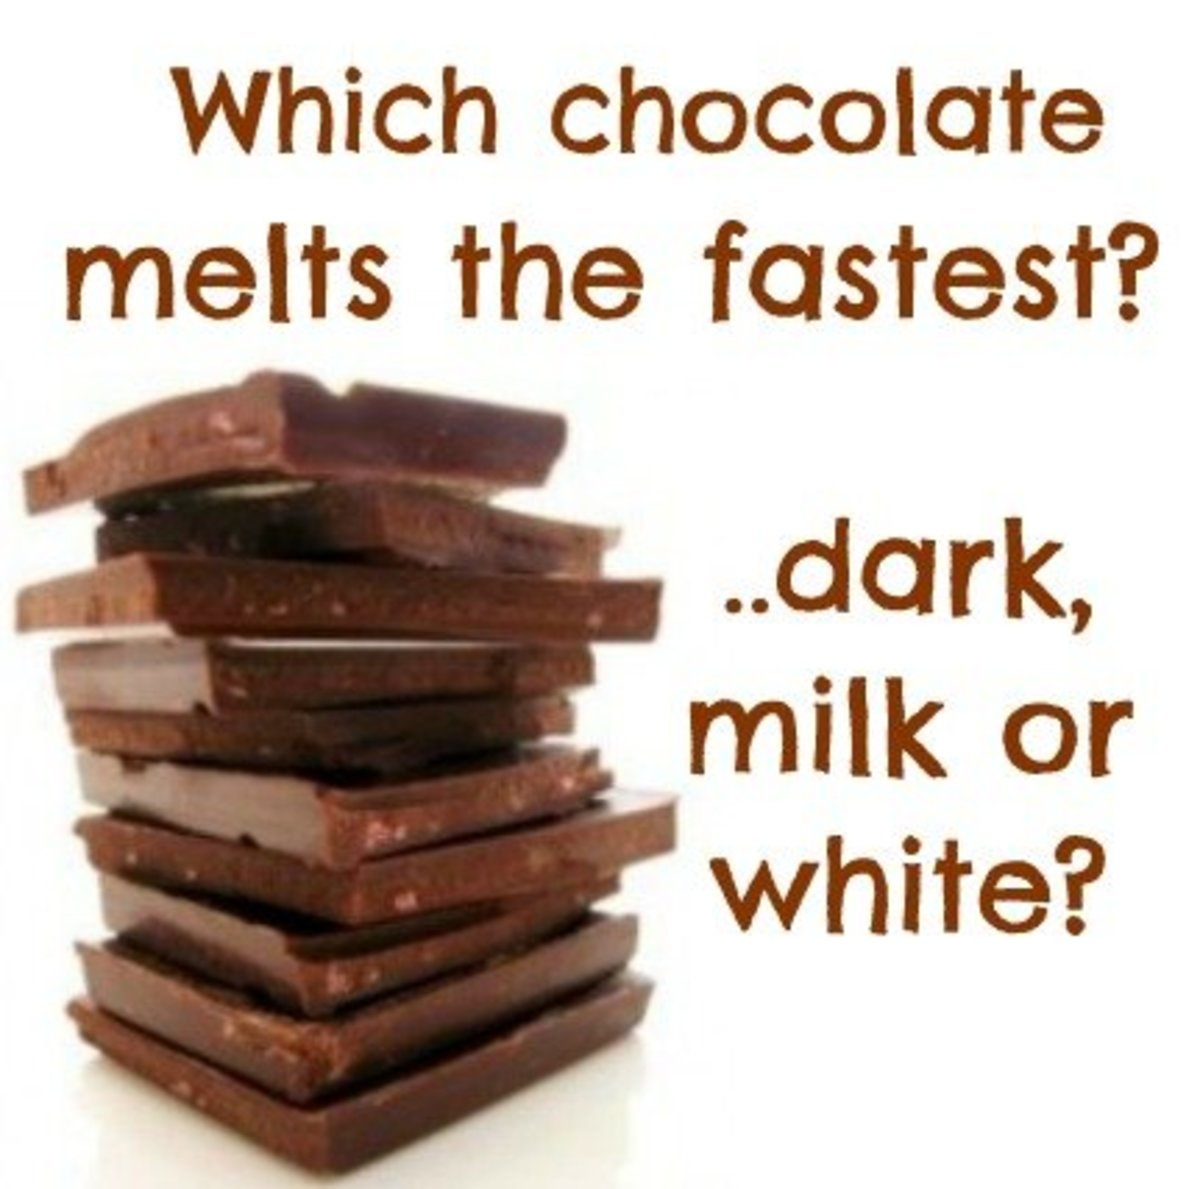 Which Chocolate Melts The Fastest And Why? Dark, Milk or White Chocolate?